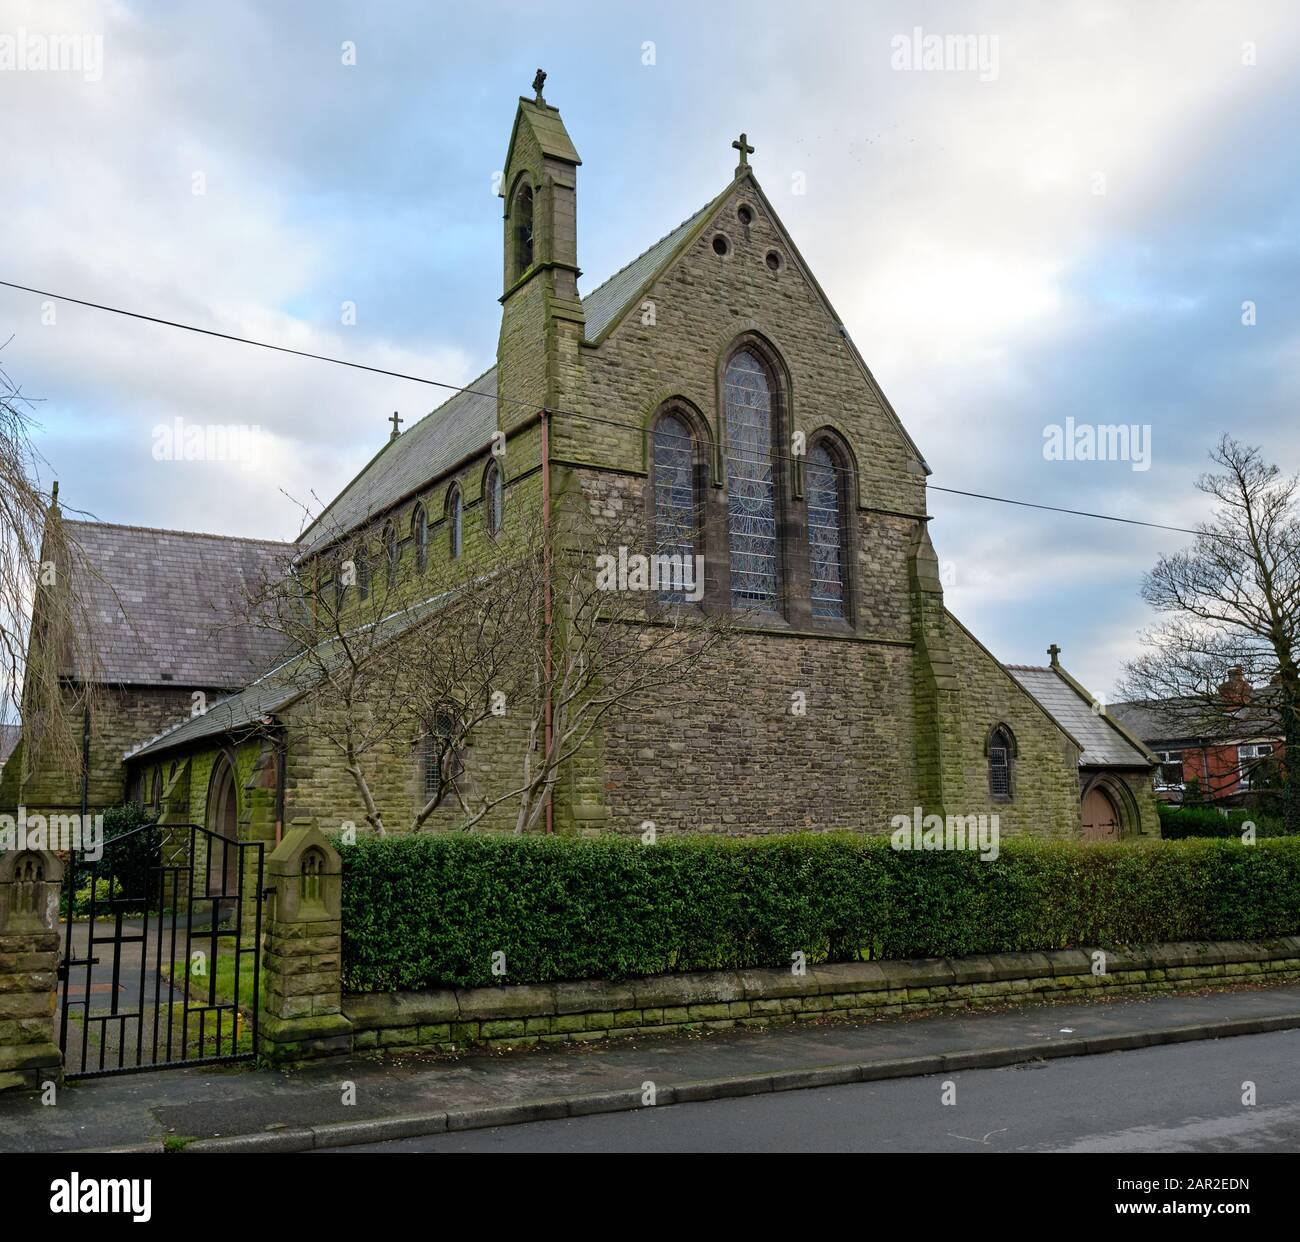 Chorley Lancashire England January 25 2020 St James Church Of England Church Chorley Consecrated In 1878 Stock Photo Alamy